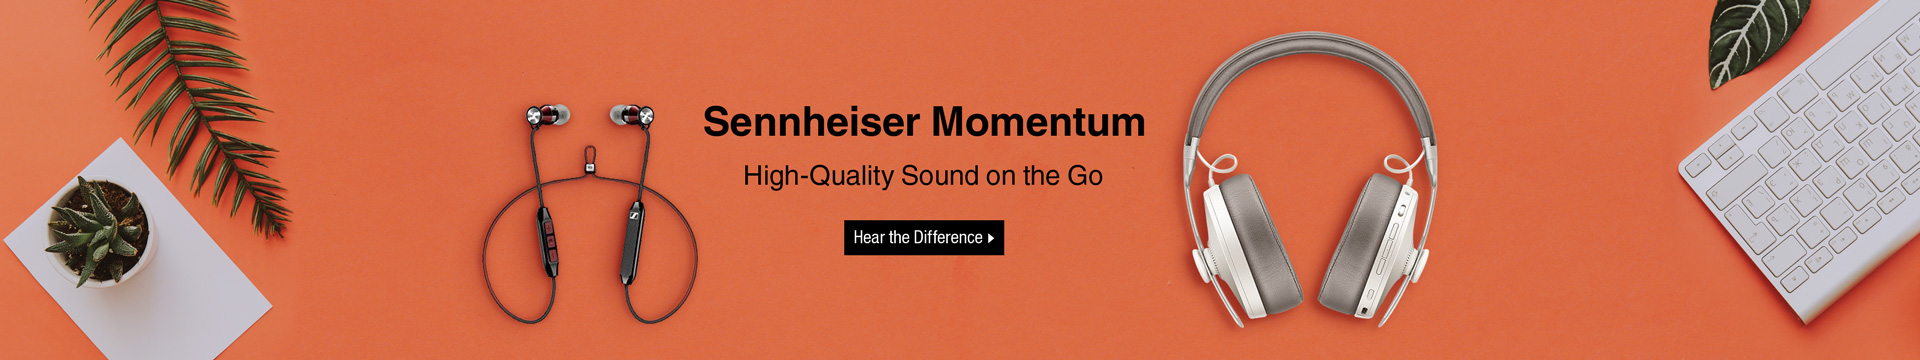 Sennheiser Momentum High-Quality Sound on the Go